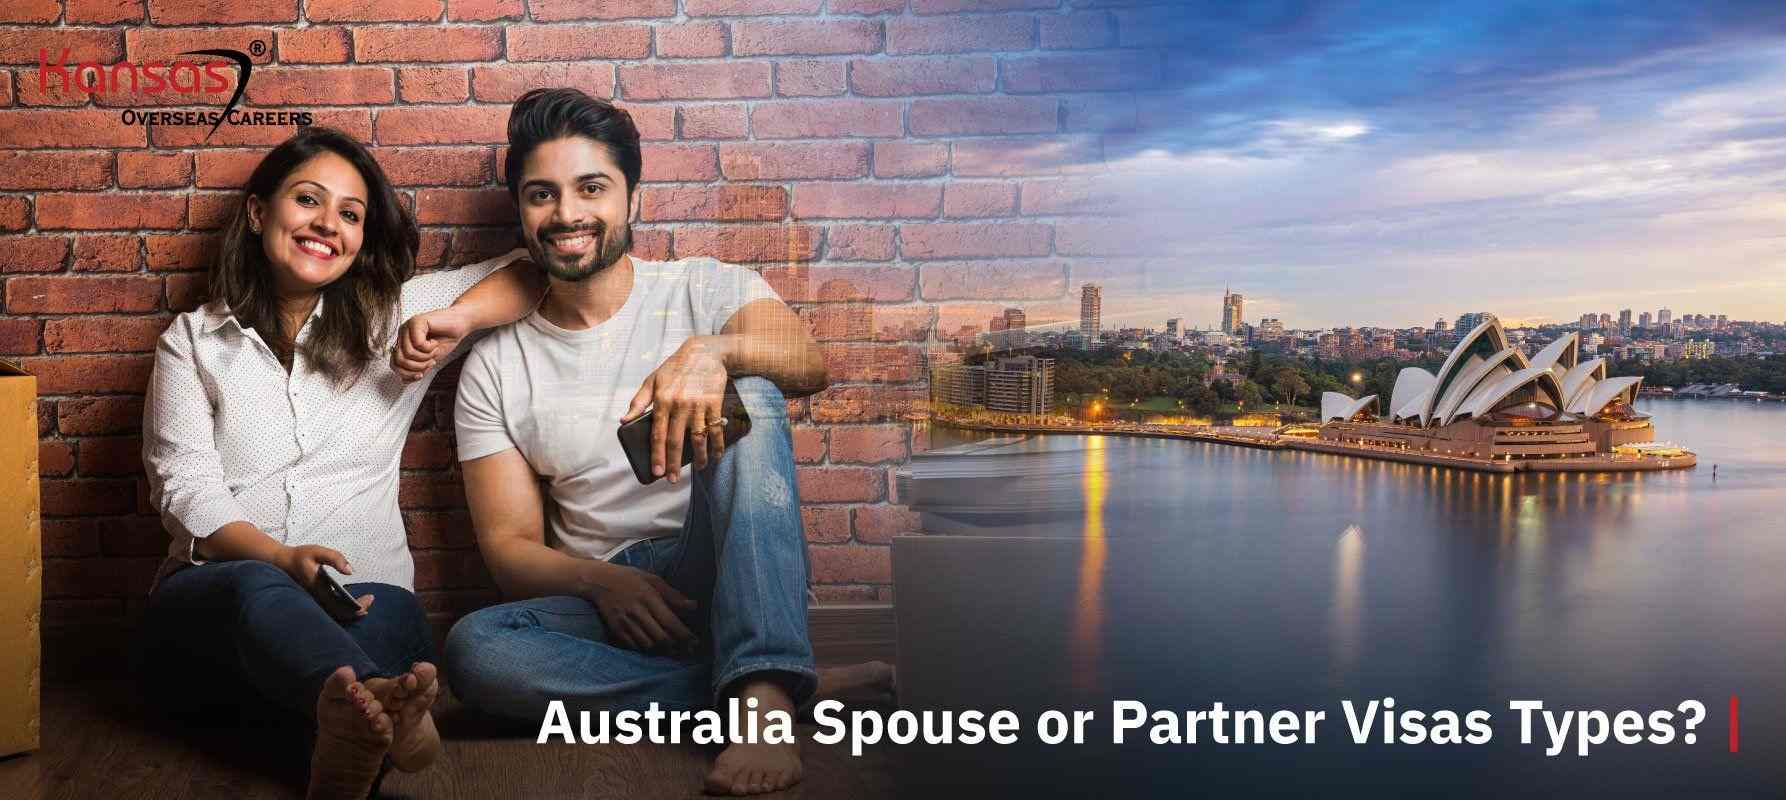 What-are-the-types-of-Australia-Spouse-or-Partner-Visas